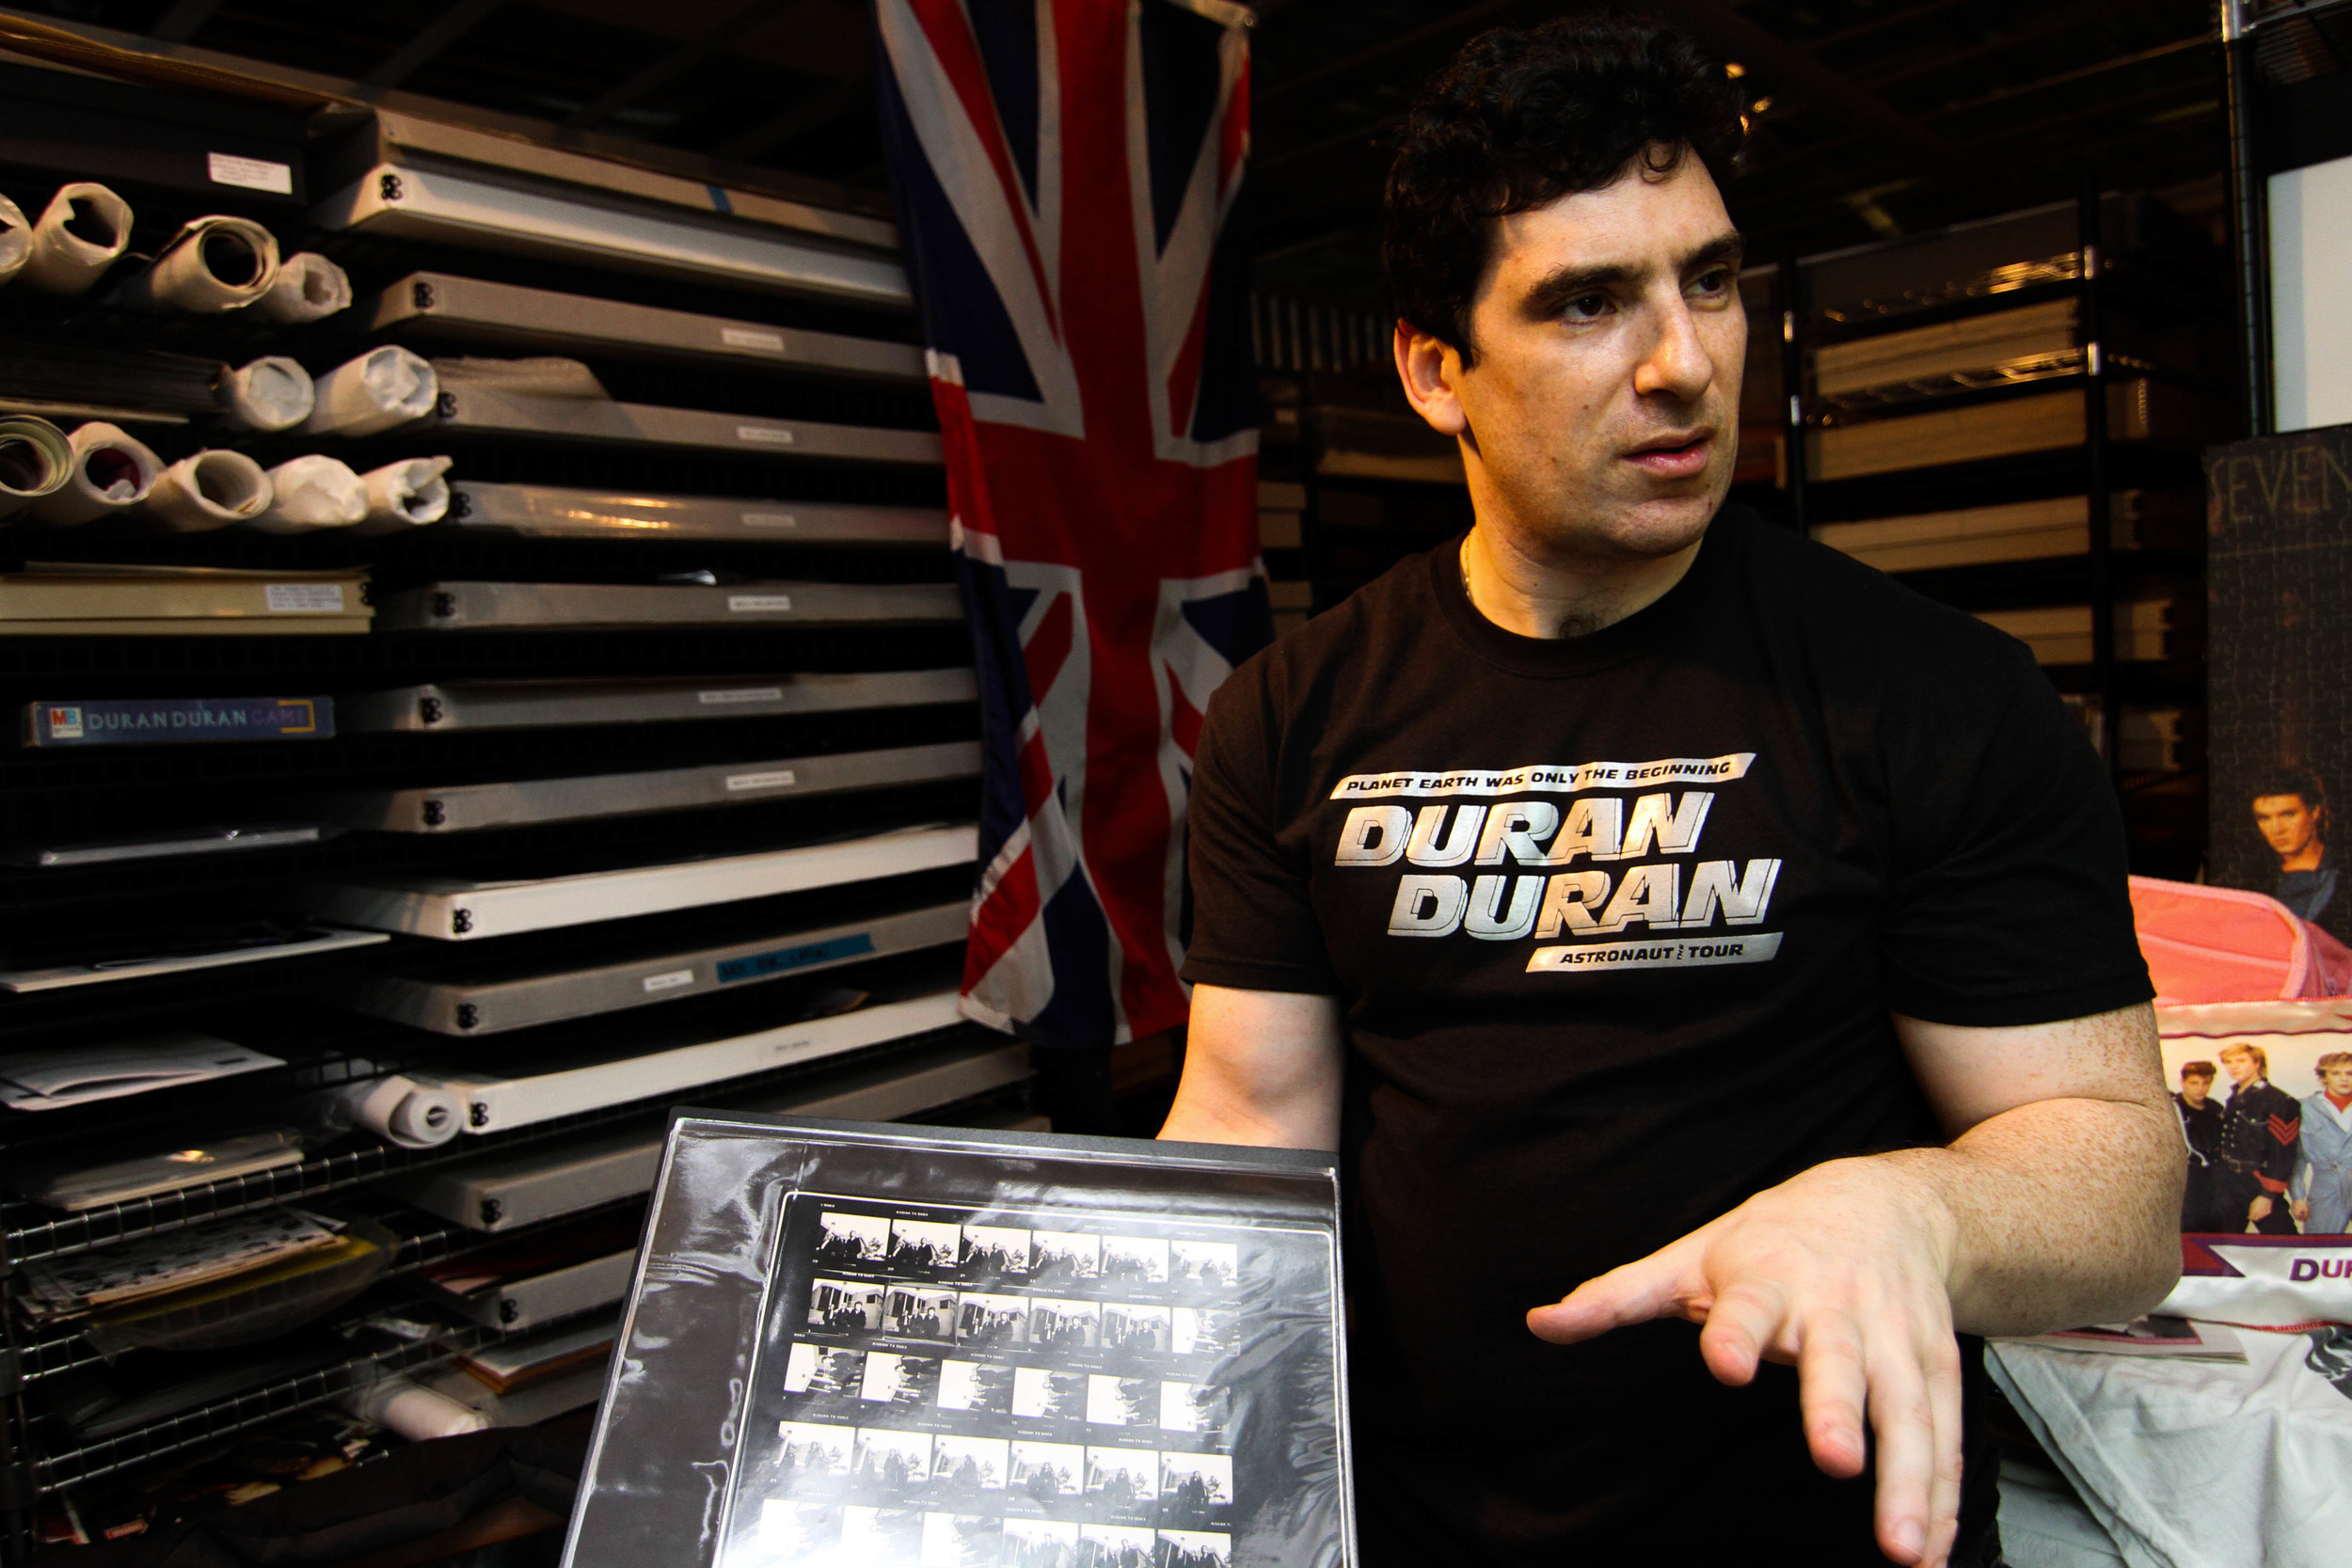 """Andrew """"Durandy"""" Golub, 42, shows rare film negatives that are a part of his Duran Duran collection on Saturday afternoon, April 5, 2014. Golub has become a well-known archivist of Duran Duran memorabilia. He houses his in a storage unit in Bellevue, Wash."""